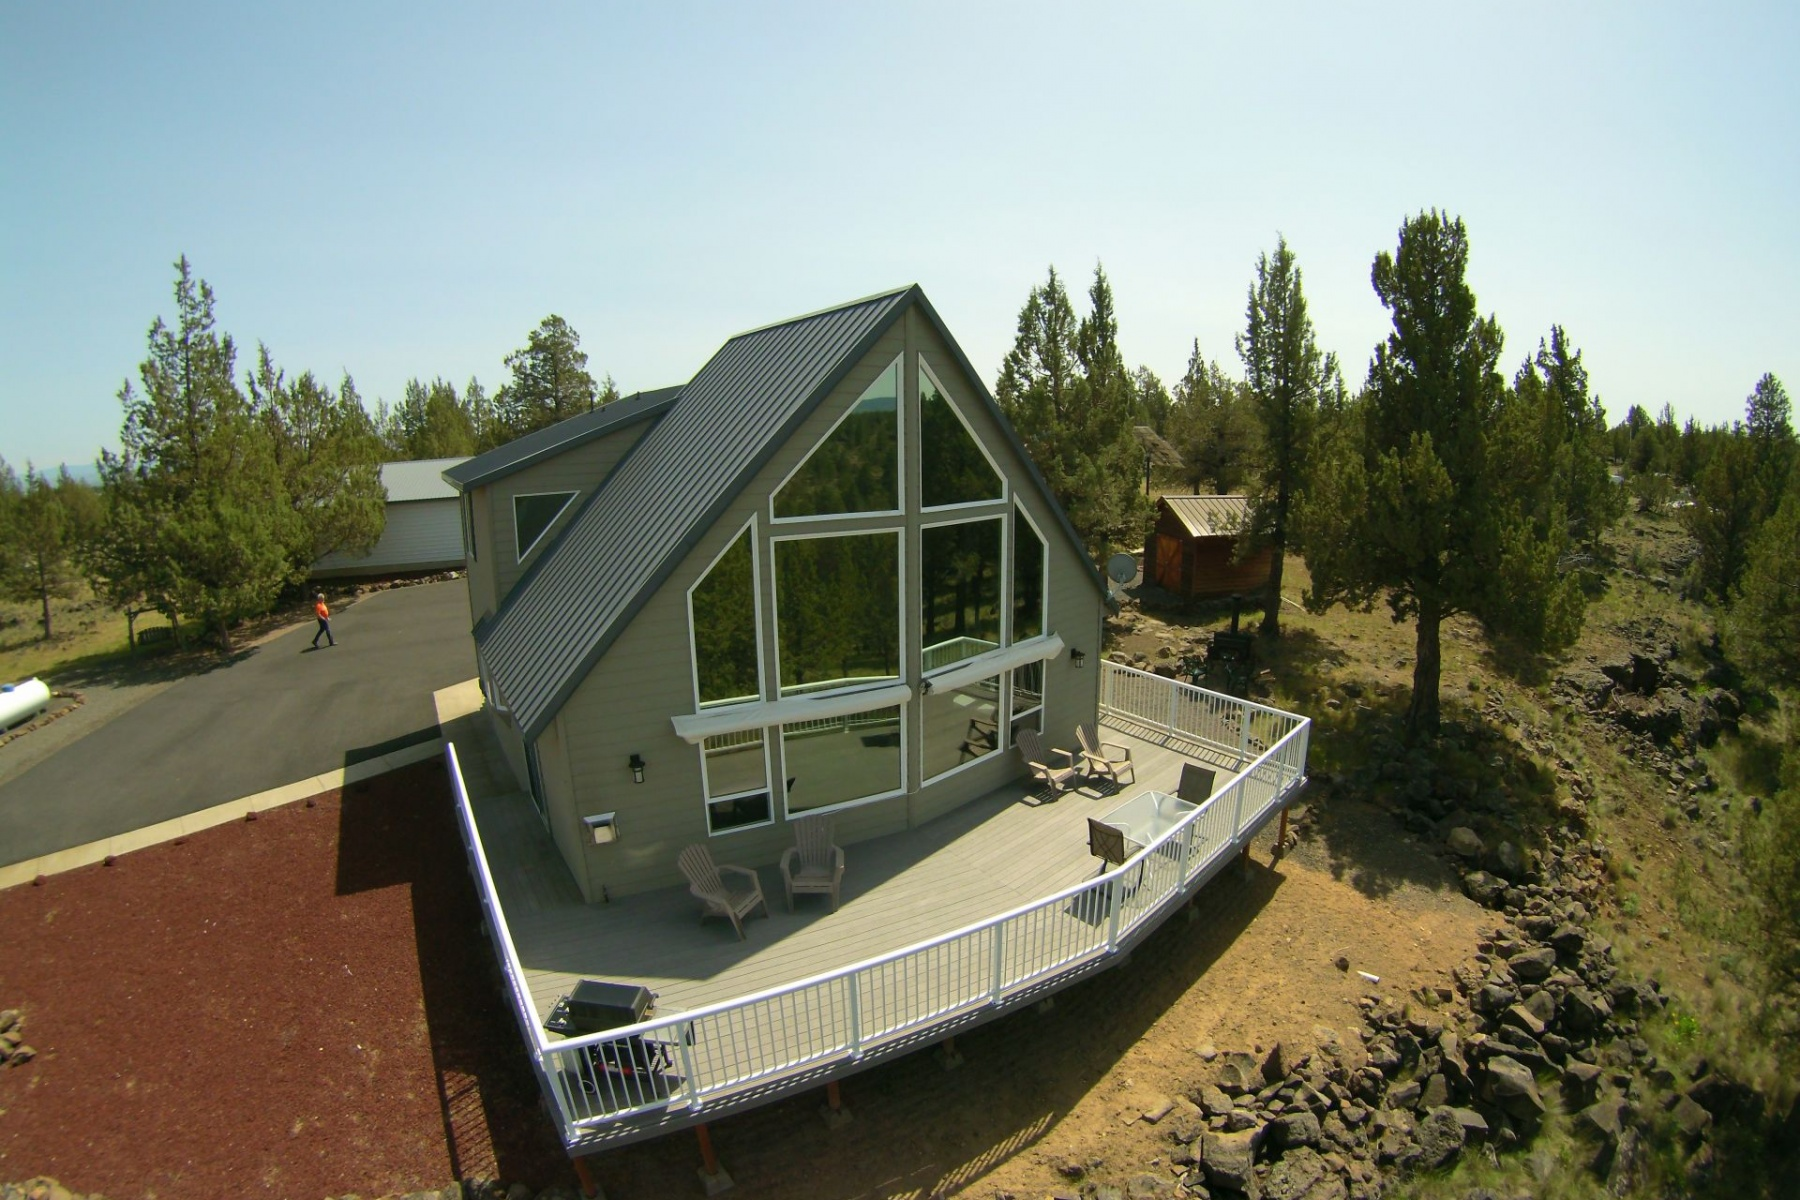 Single Family Home for Sale at 5386 SW Wildcat Lane, CULVER 5386 SW Wildcat Ln Culver, Oregon, 97734 United States